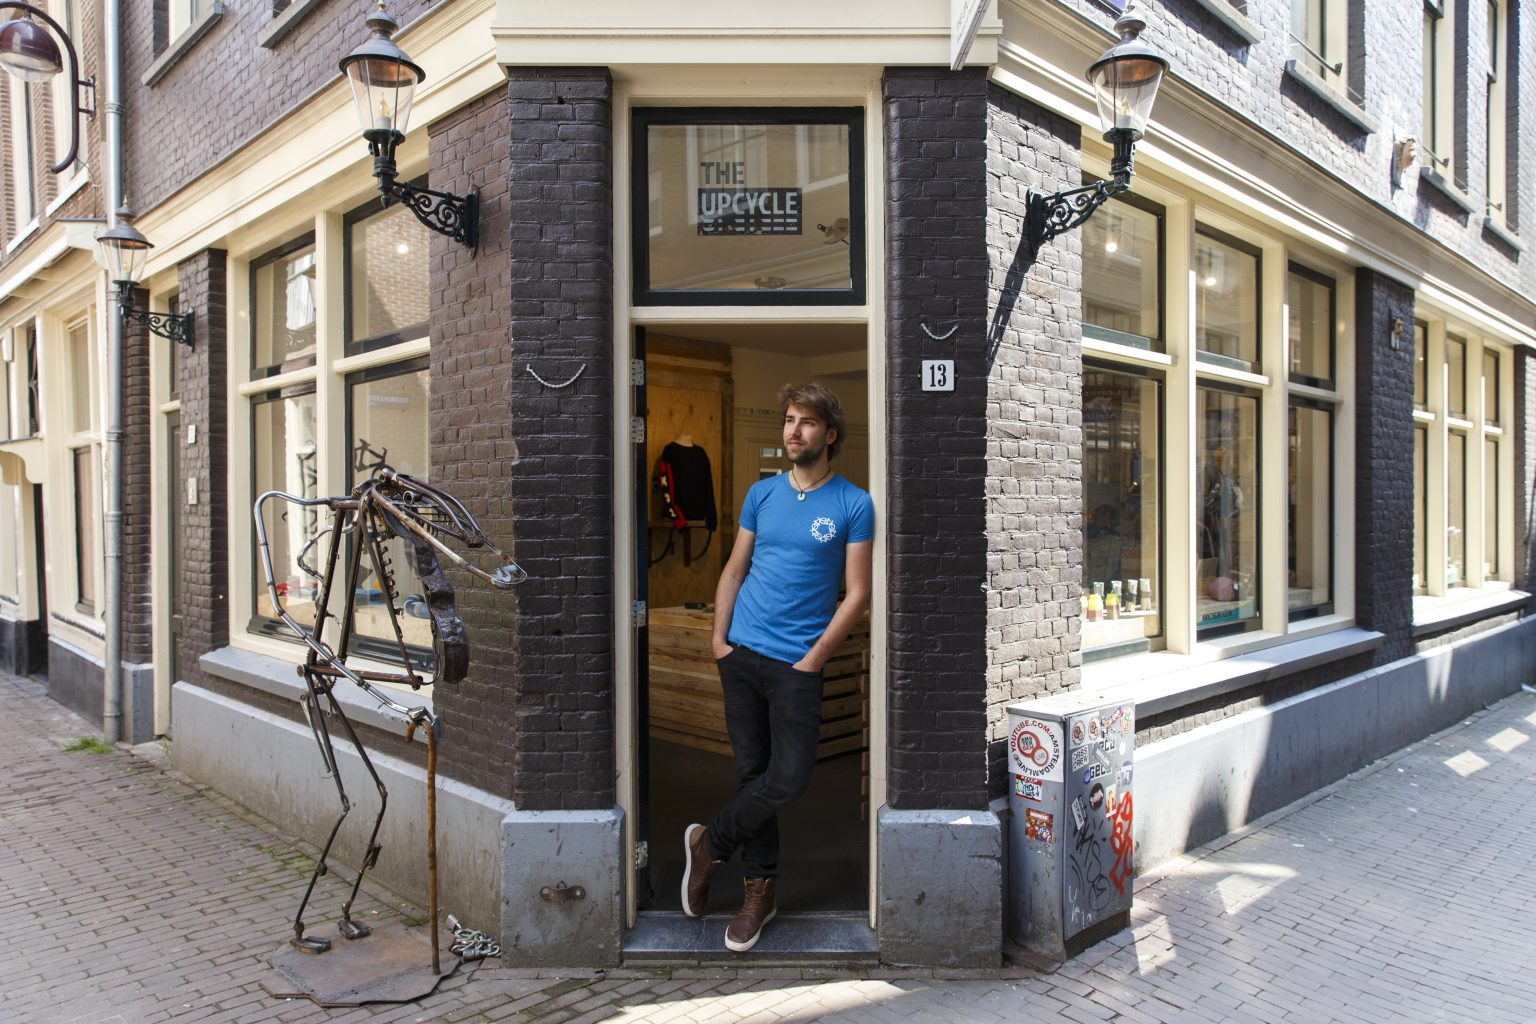 Green Light District - The Upcycle Tim Spekkens